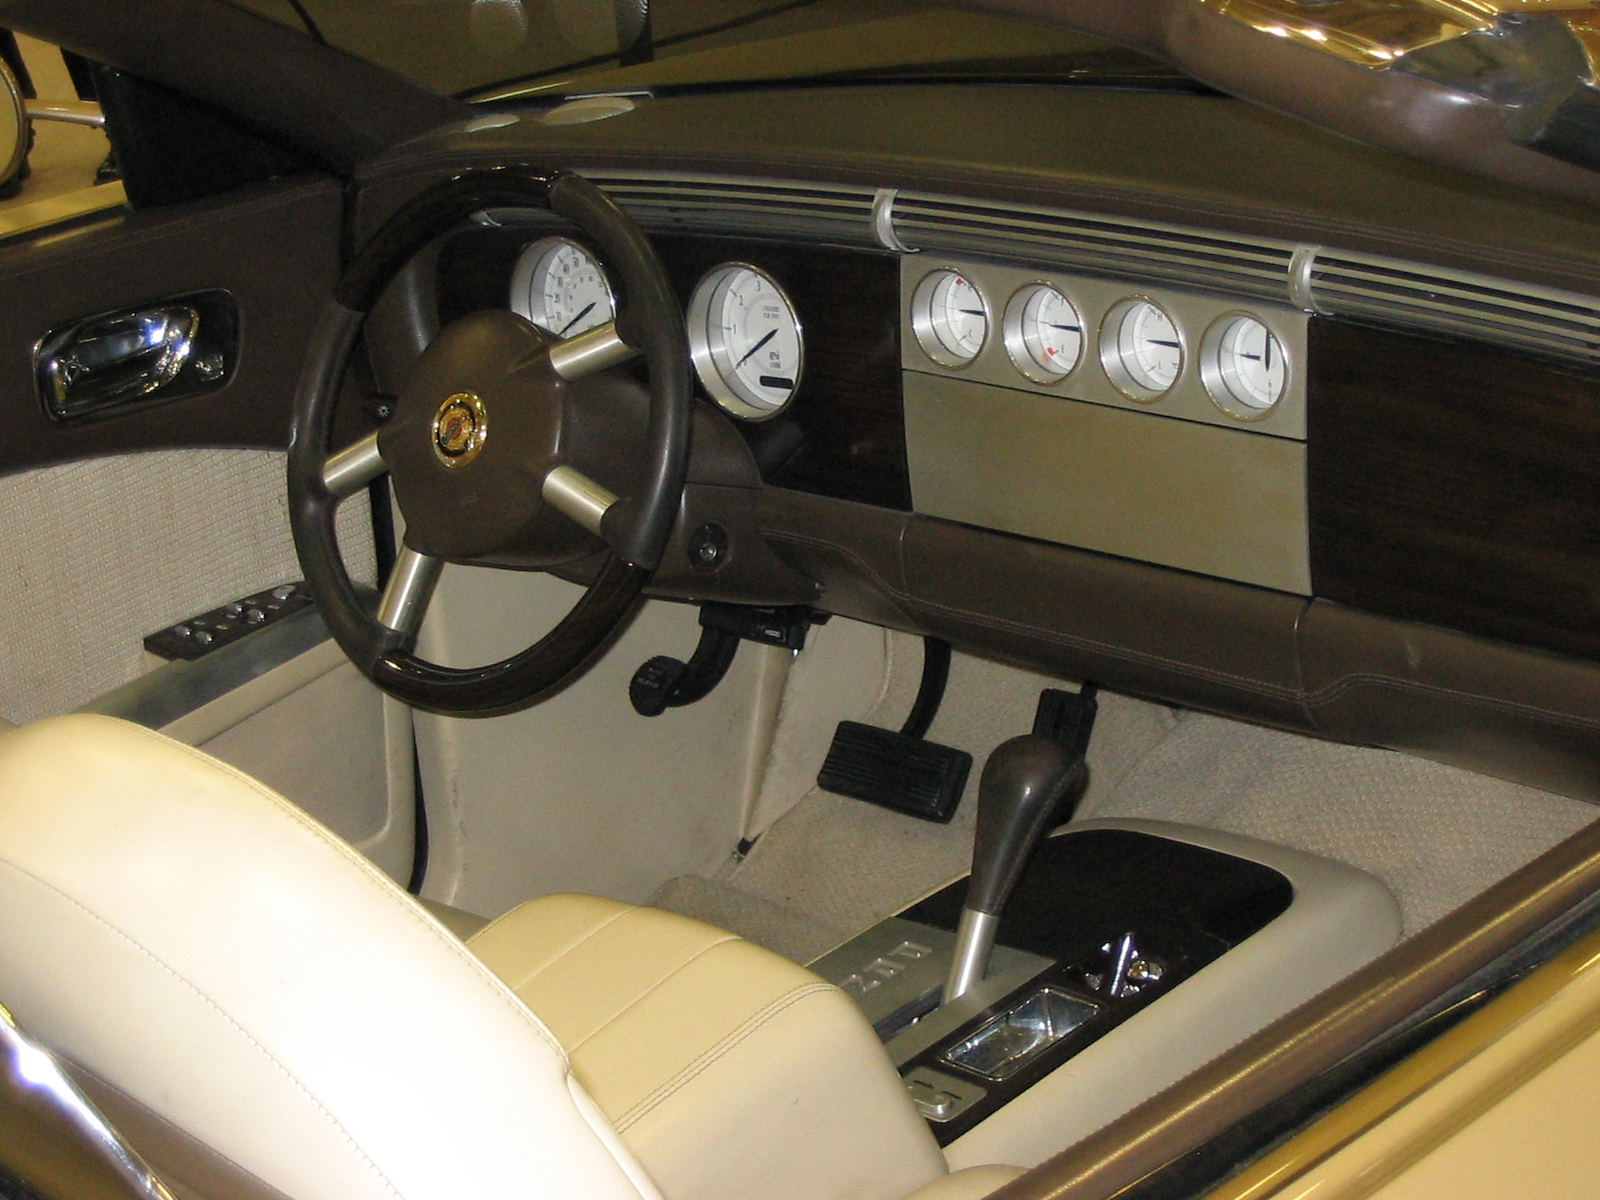 File:Chrysler Phaeton interior.jpg - Wikimedia Commons